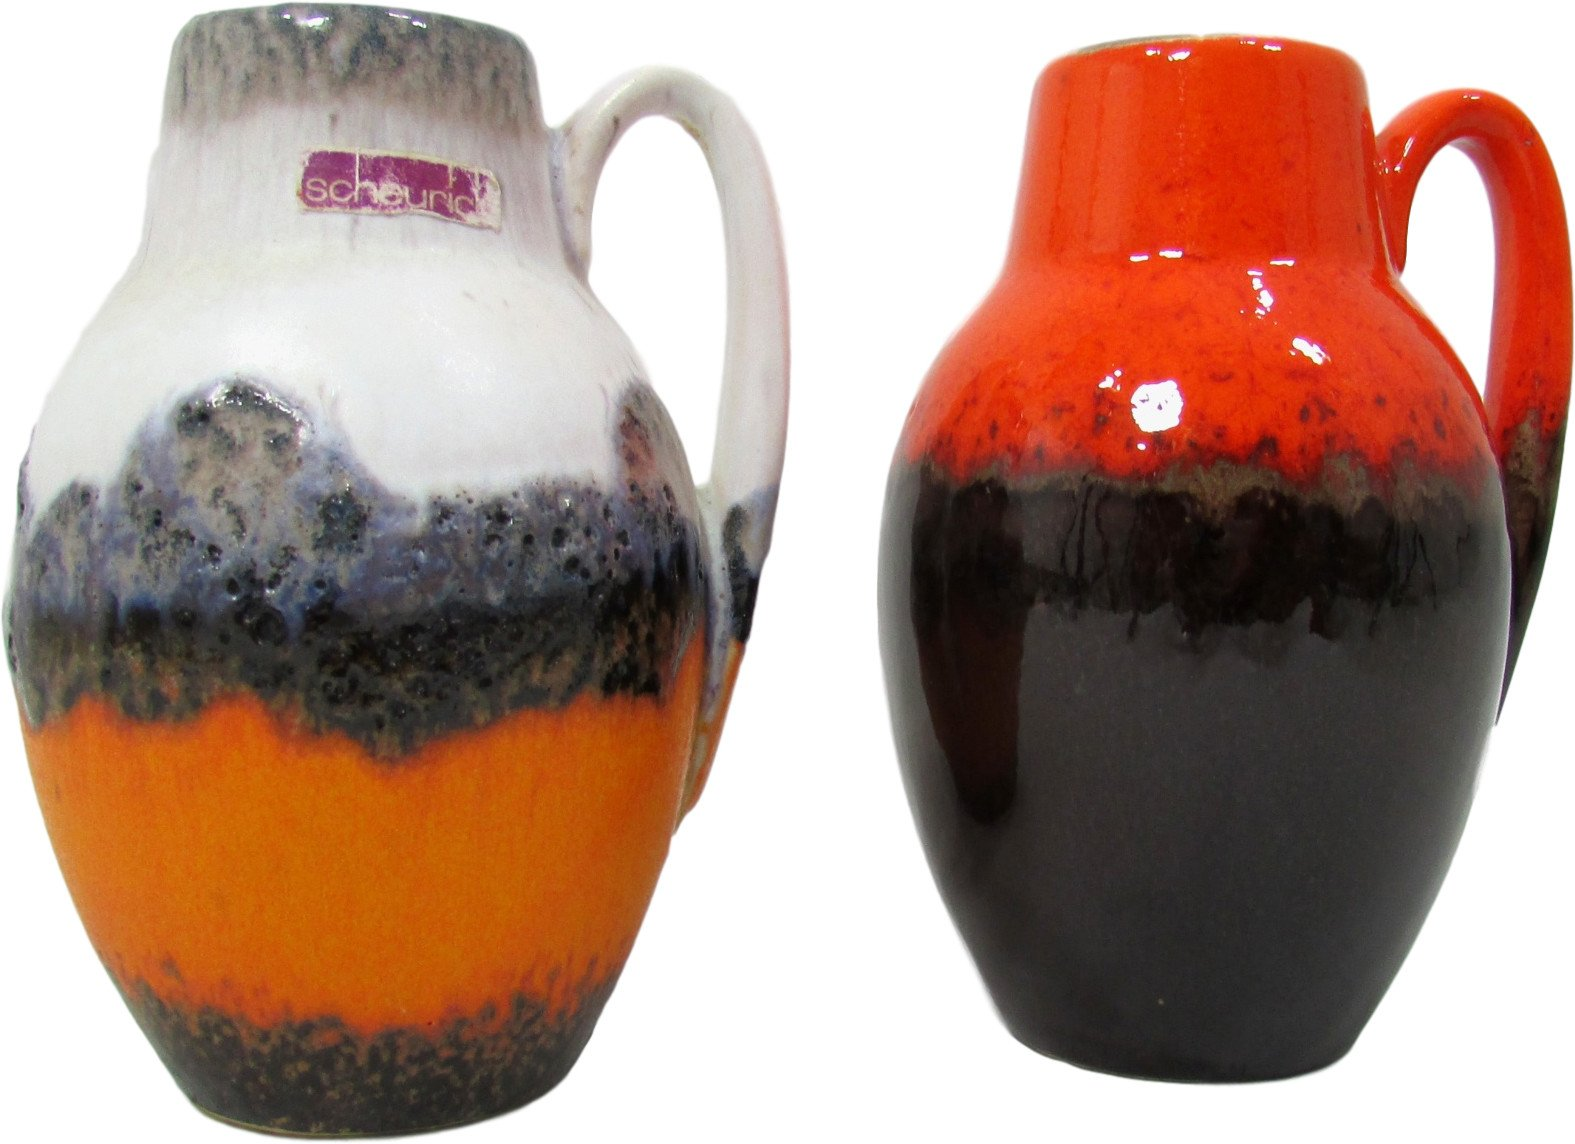 Pair of Vases, Scheurich, Germany, 1960s